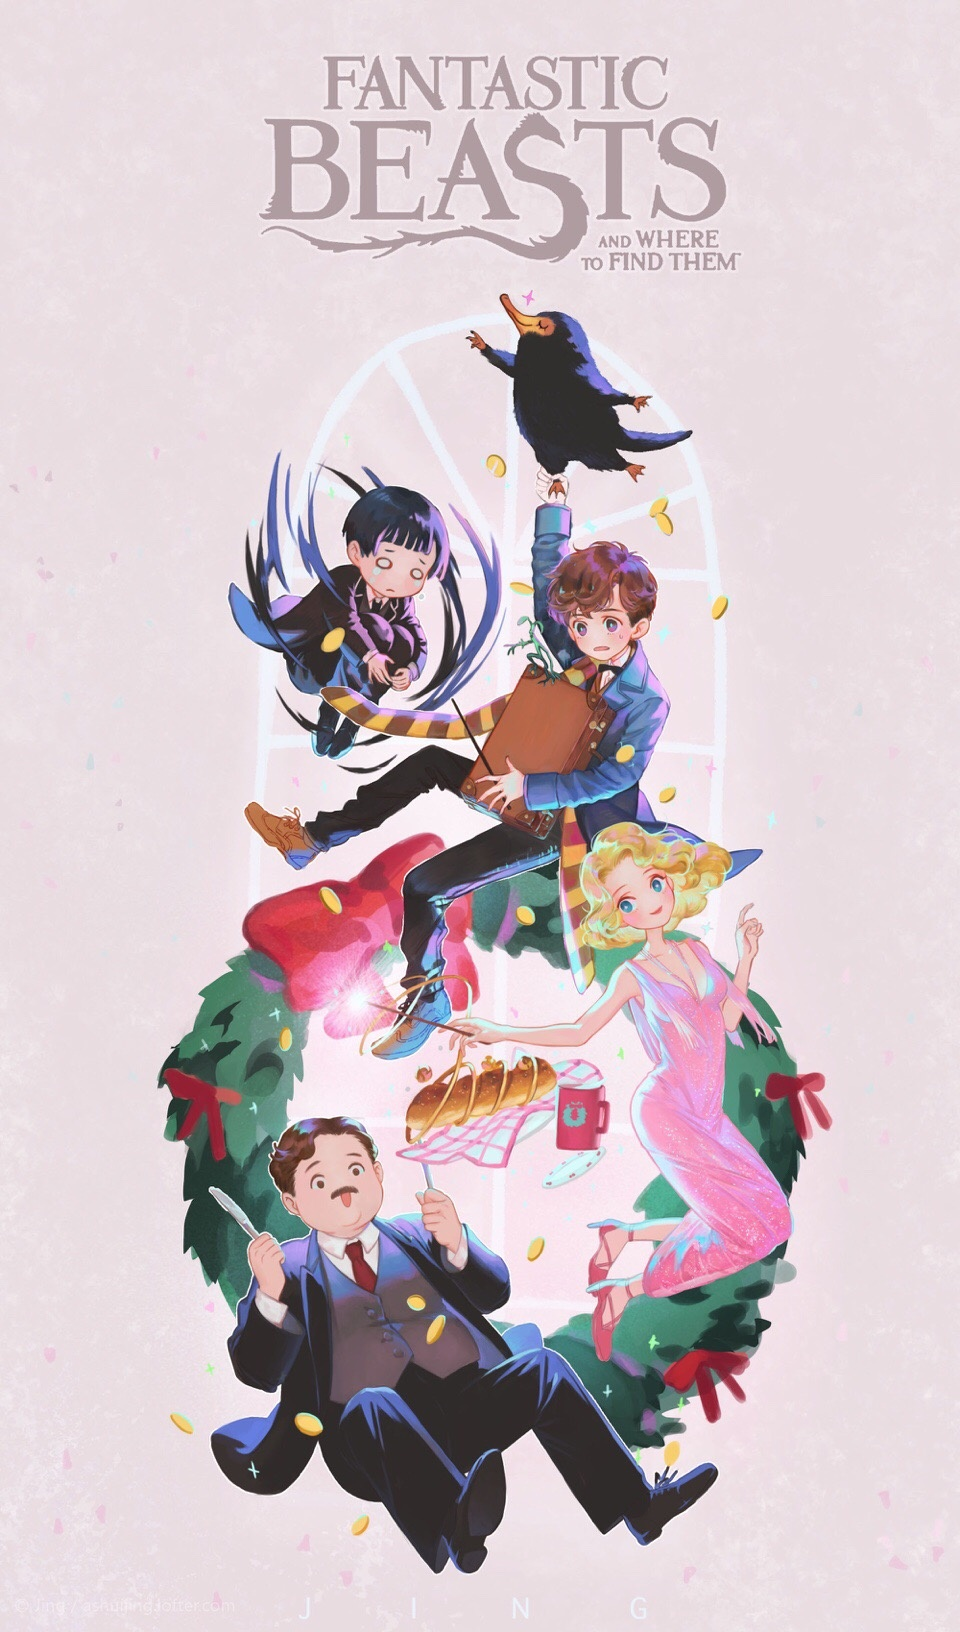 Newton Scamander Fantastic Beasts And Where To Find Them Zerochan Anime Image Board